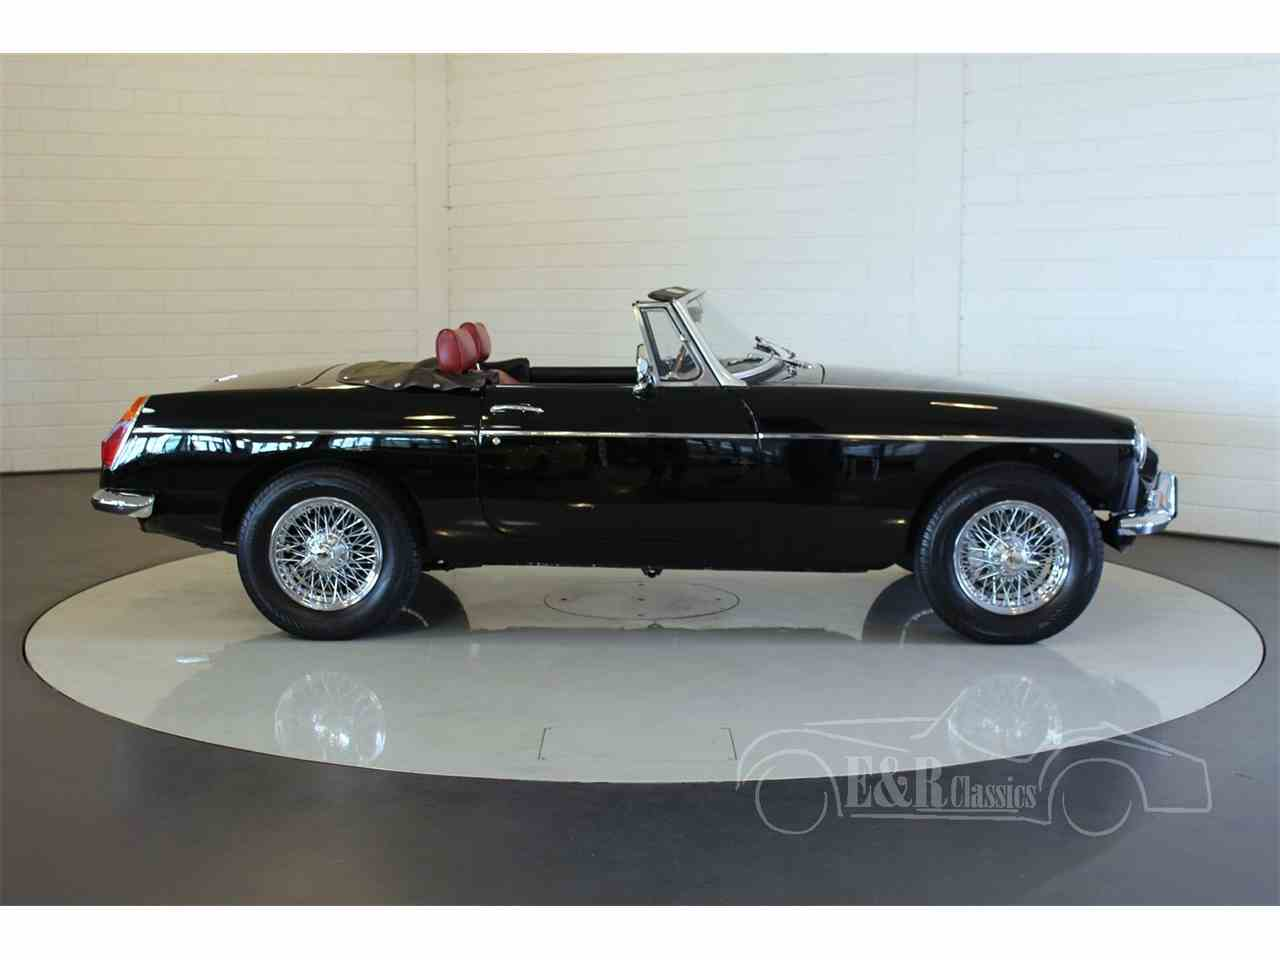 Large Picture of '79 MG MGB - $42,150.00 Offered by E & R Classics - LUV1